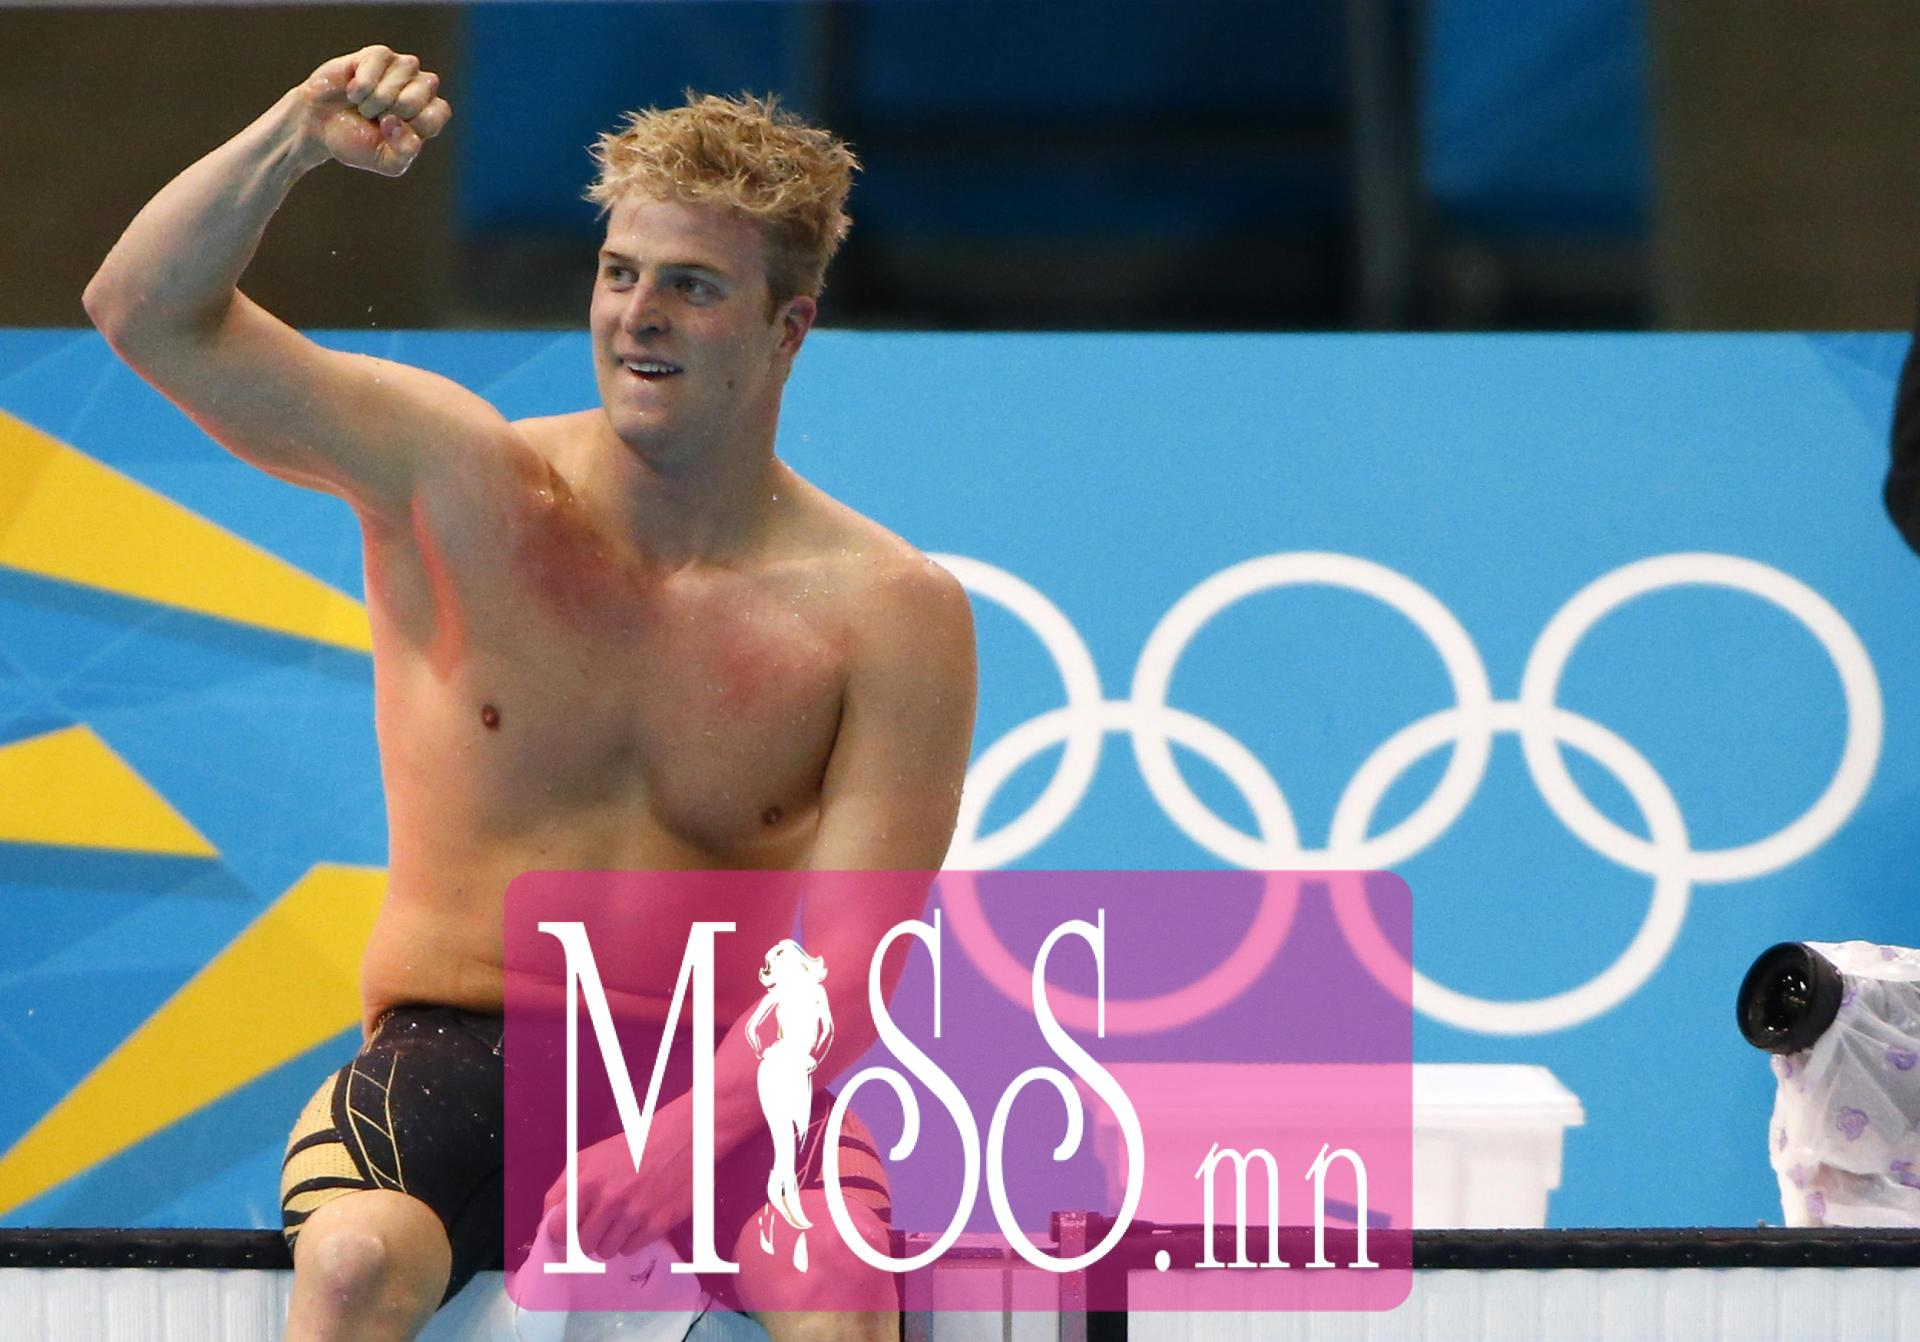 Germany's Steffen Deibler reacts after his men's 100m butterfly semi-final during the London 2012 Olympic Games